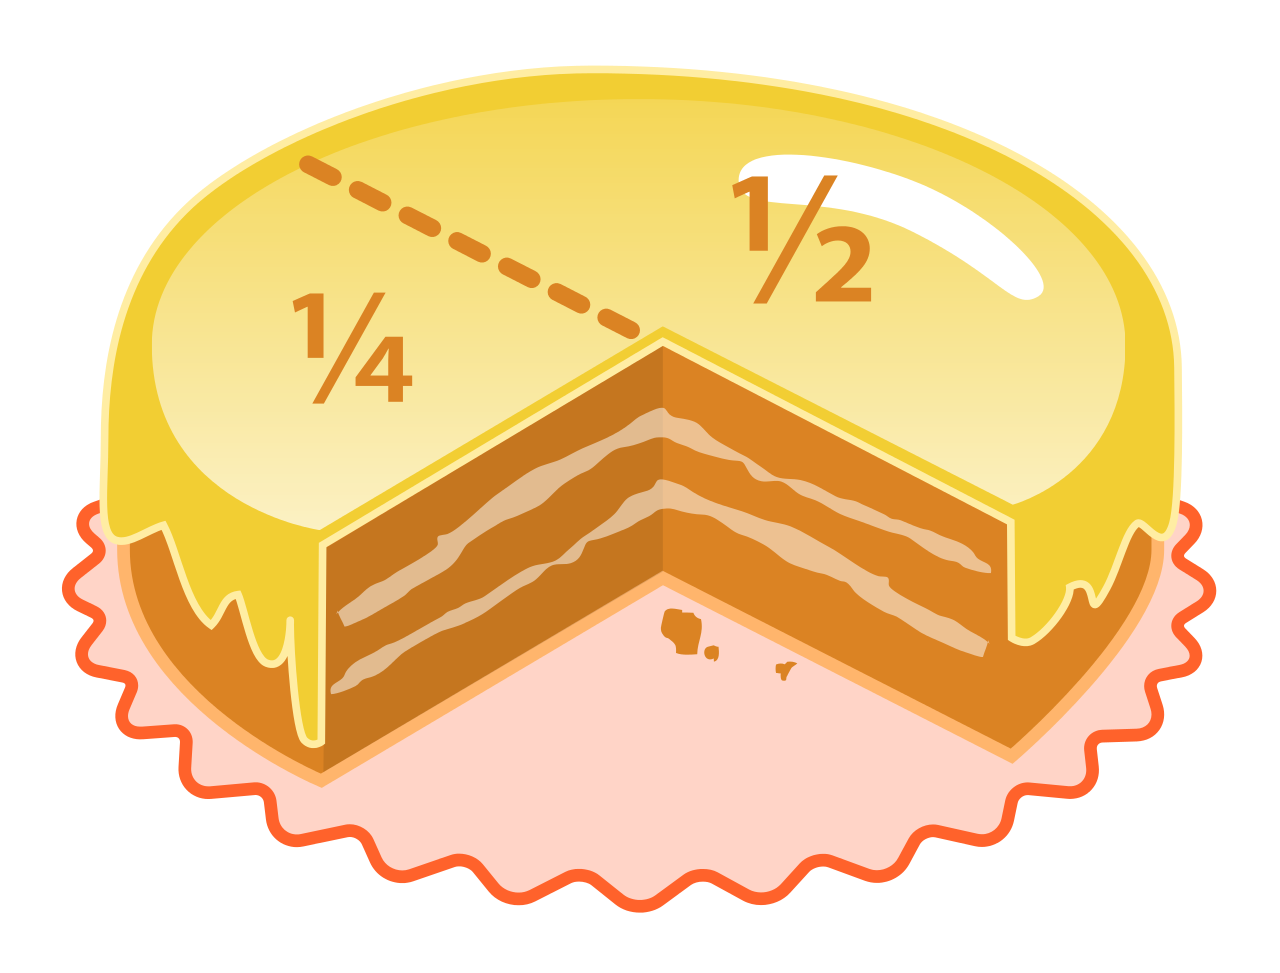 image royalty free Fraction clipart. File cake fractions svg